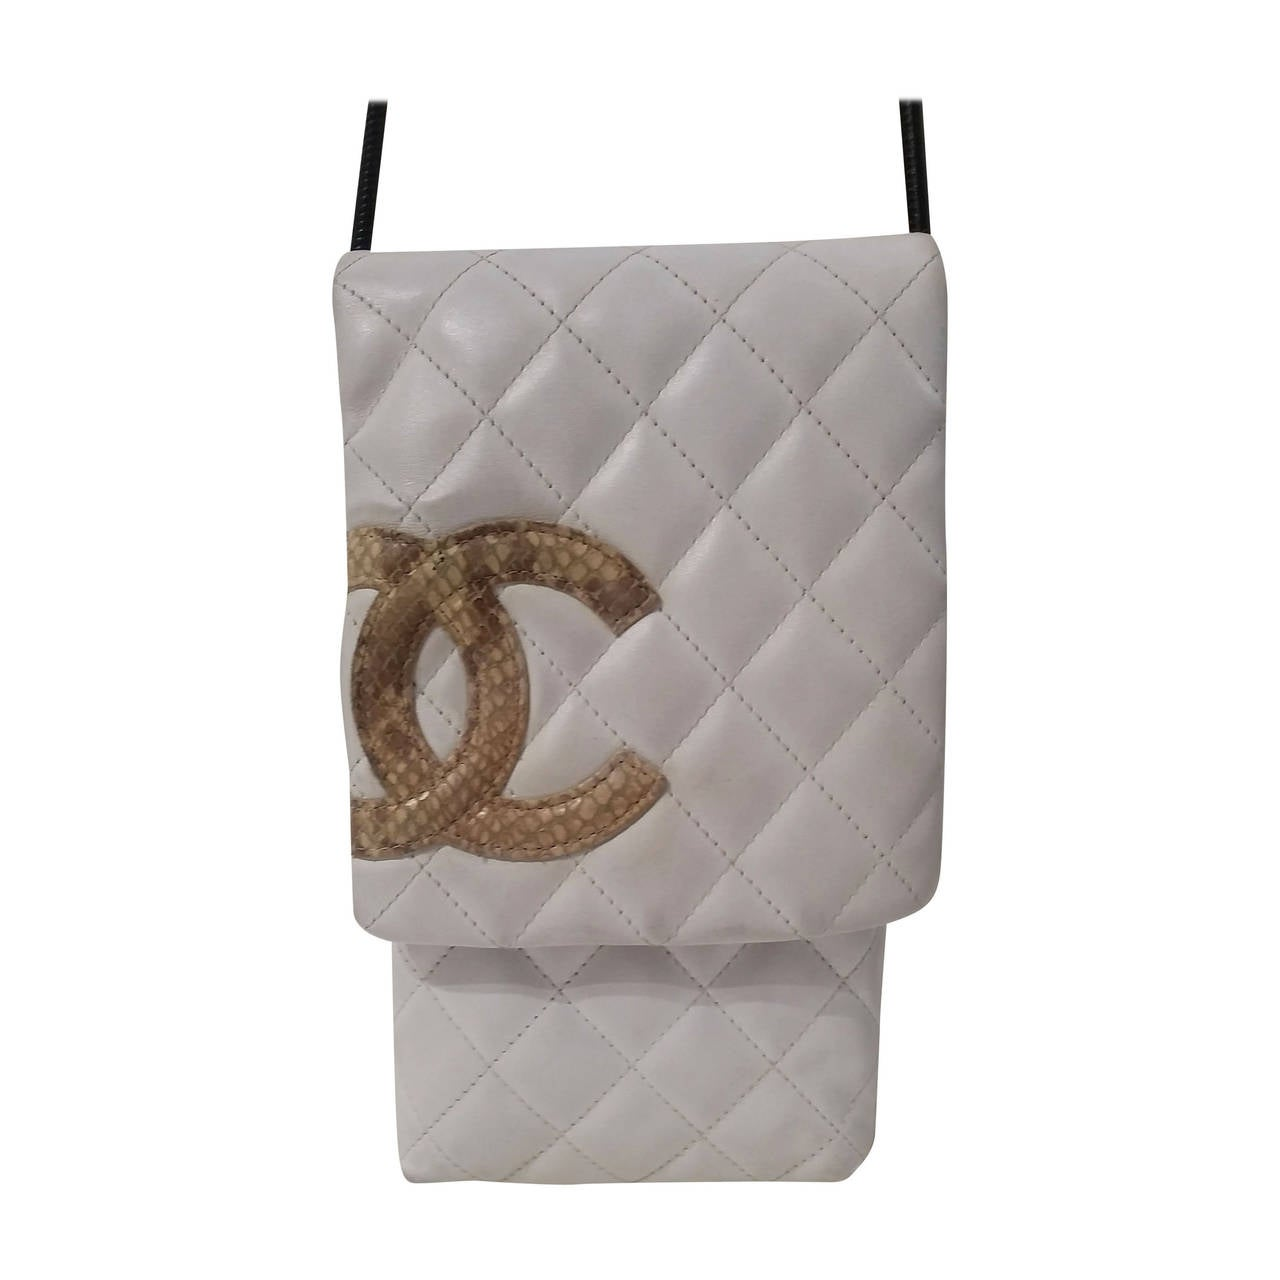 2004 Chanel white cambon shoulder bag with CC Python skin For Sale